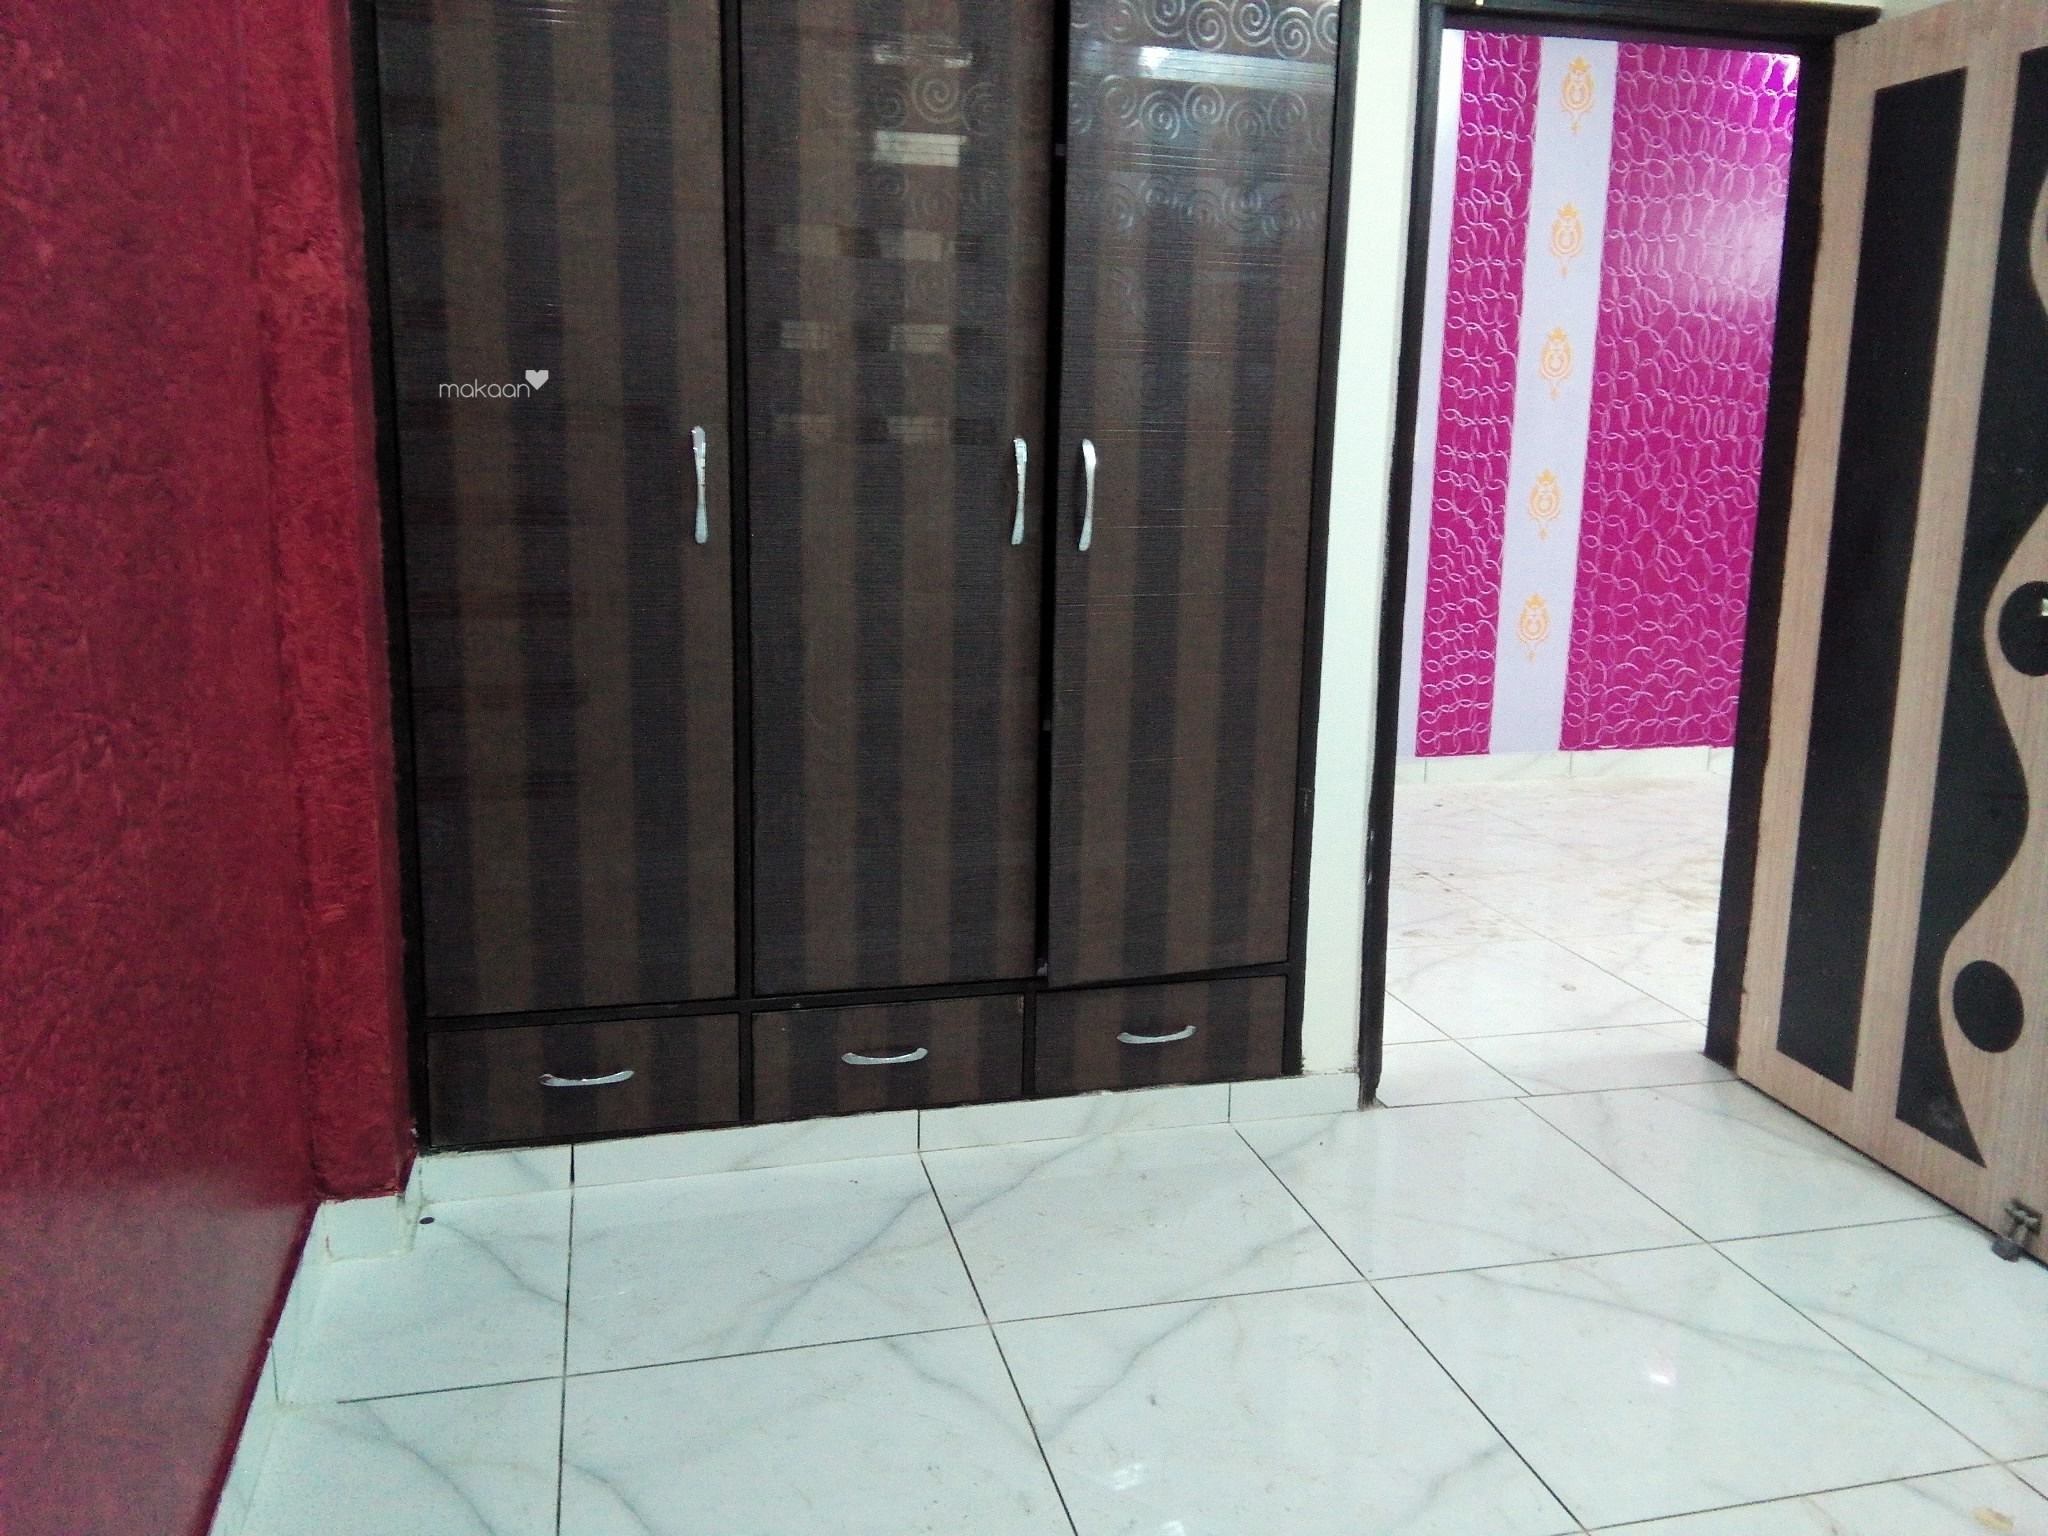 925 sq ft 2BHK 2BHK+2T (925 sq ft) Property By Demera Homz In Project, Sector 2 Vaishali